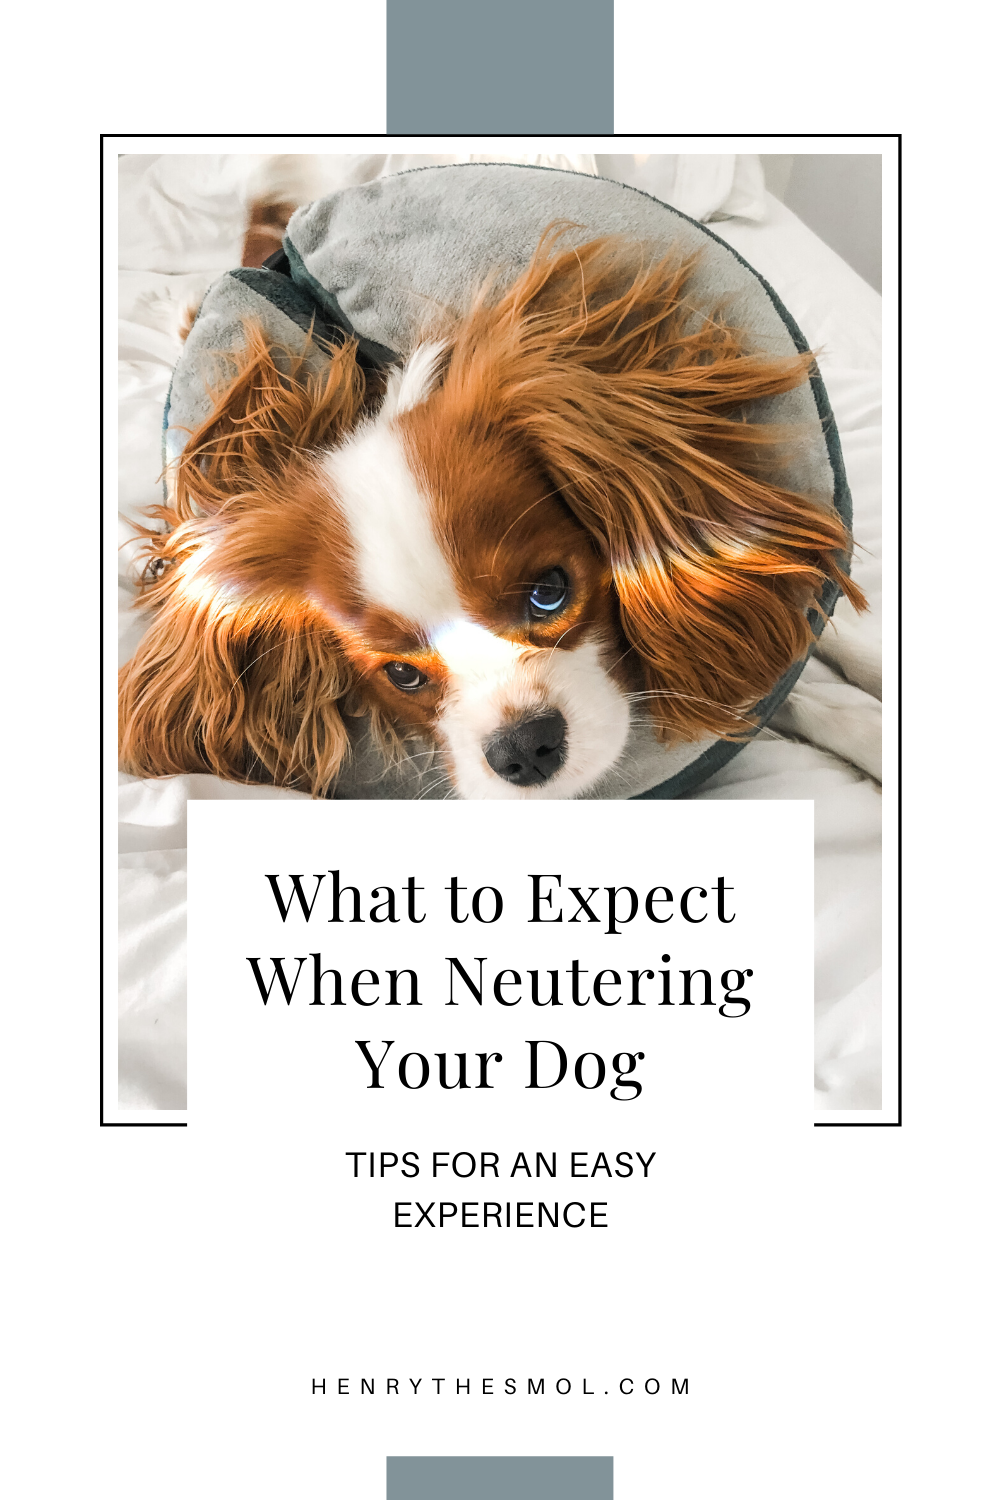 What to Expect When Neutering Your Dog